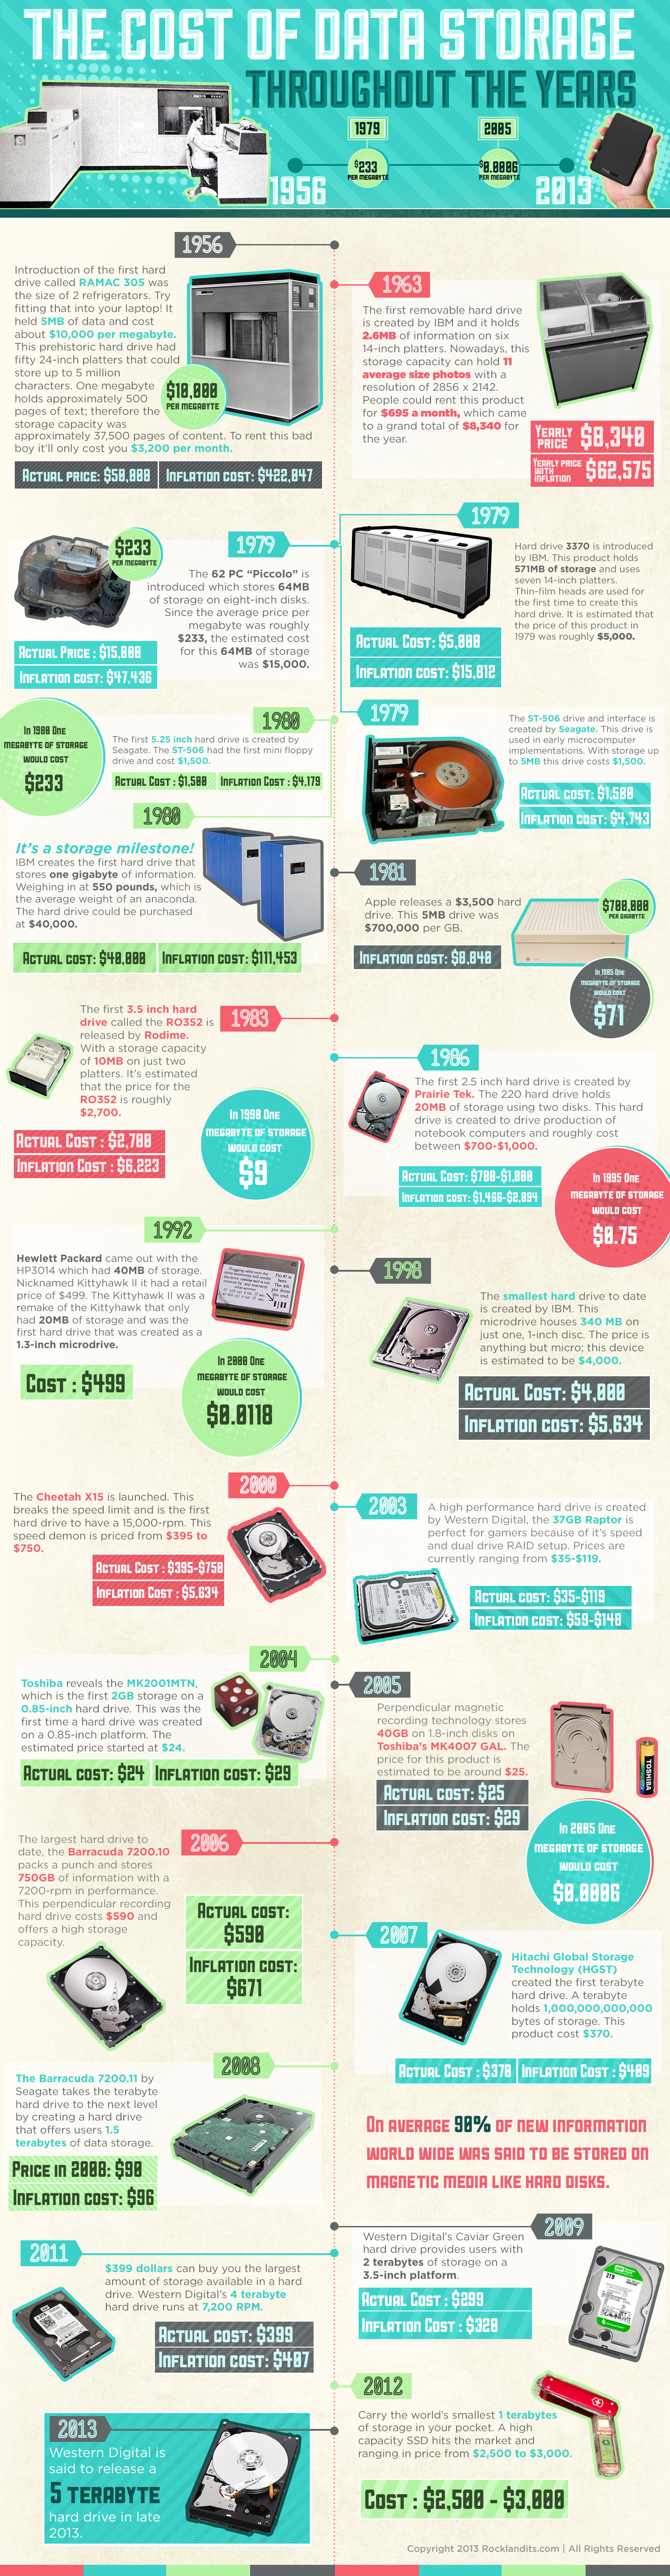 The Cost of Data Storage Throughout the Years Infographic Infographic